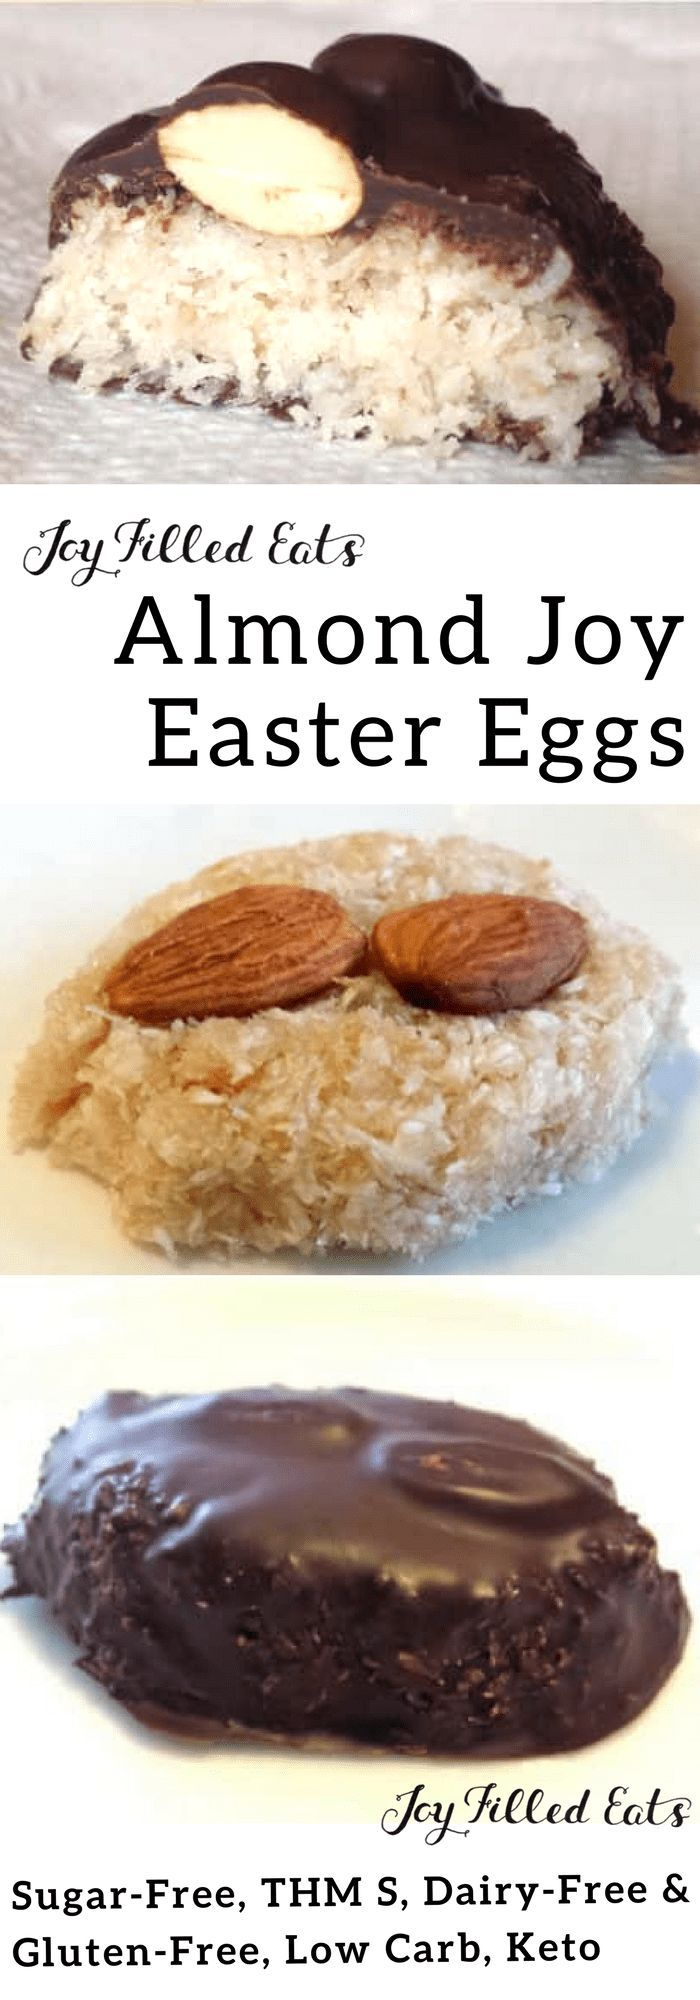 Chewy Almond Joy Easter Eggs Candies – Low Carb, Keto, THM S, Gluten-Free, Sugar-Free, Dairy-Free, Grain-Free - fill your Easter basket with these healthy candies for a no guilt treat!